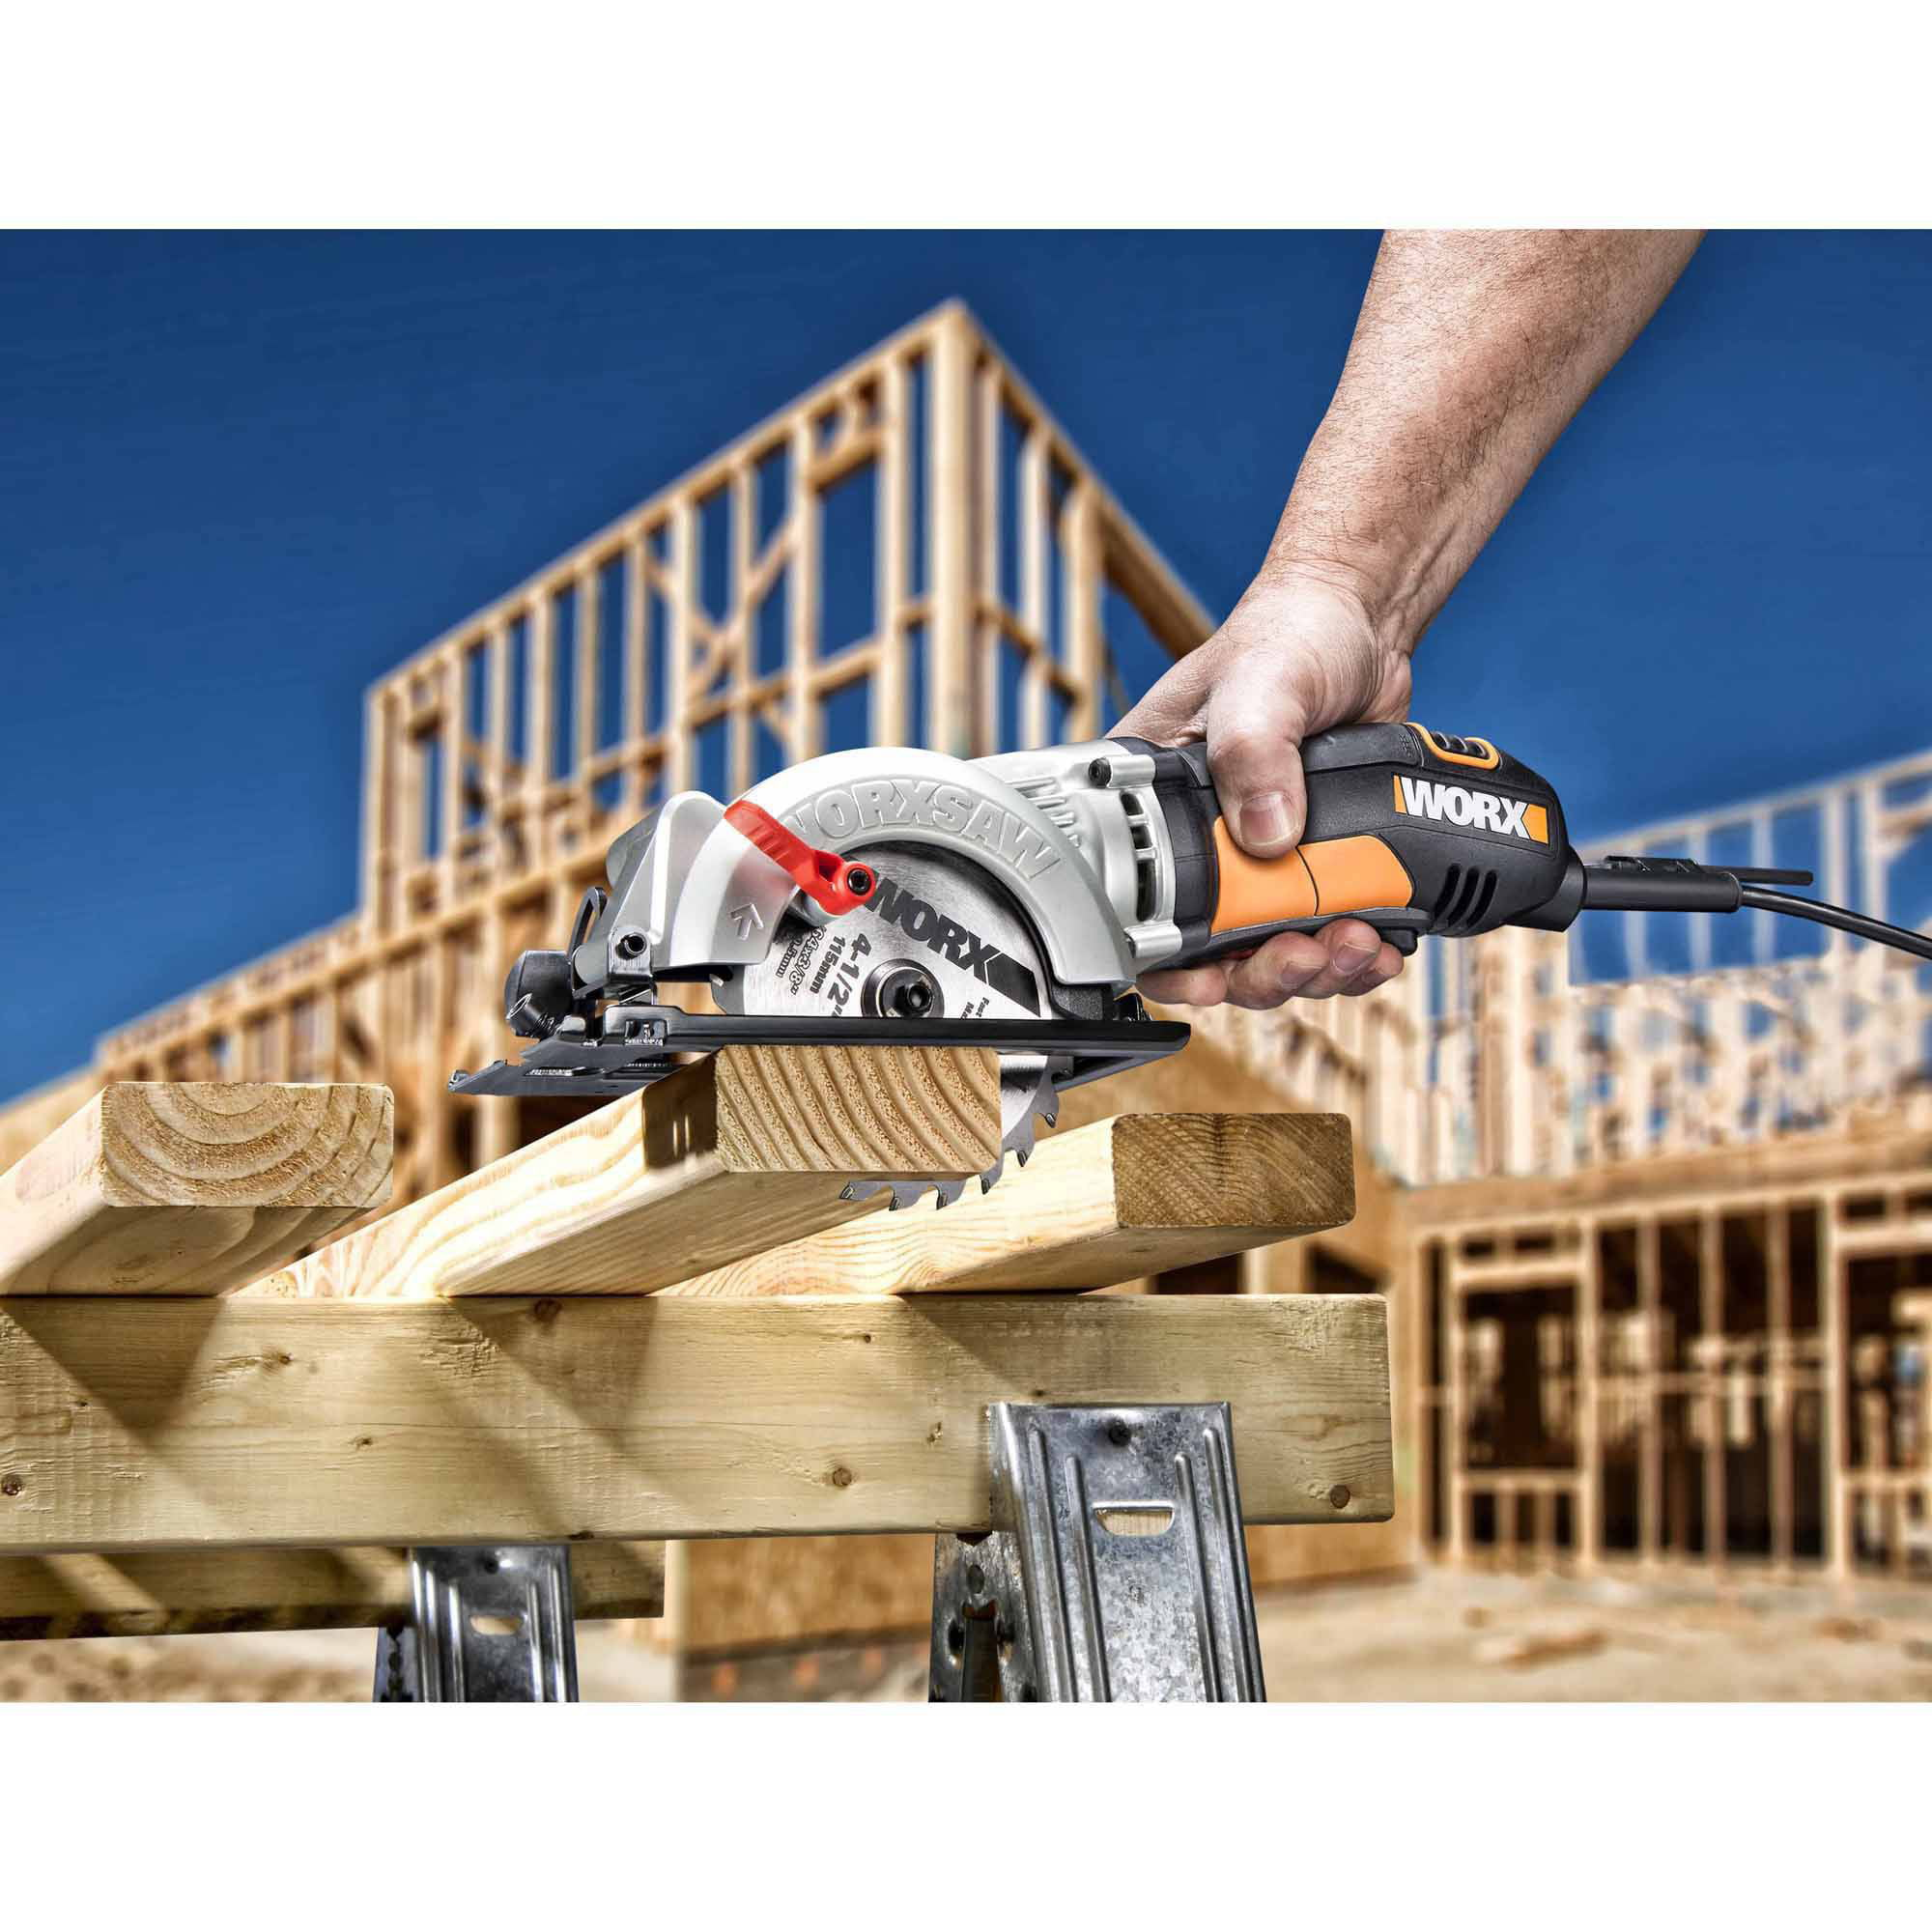 Worx worxsaw 4 12 compact circular saw wx429l walmart greentooth Image collections